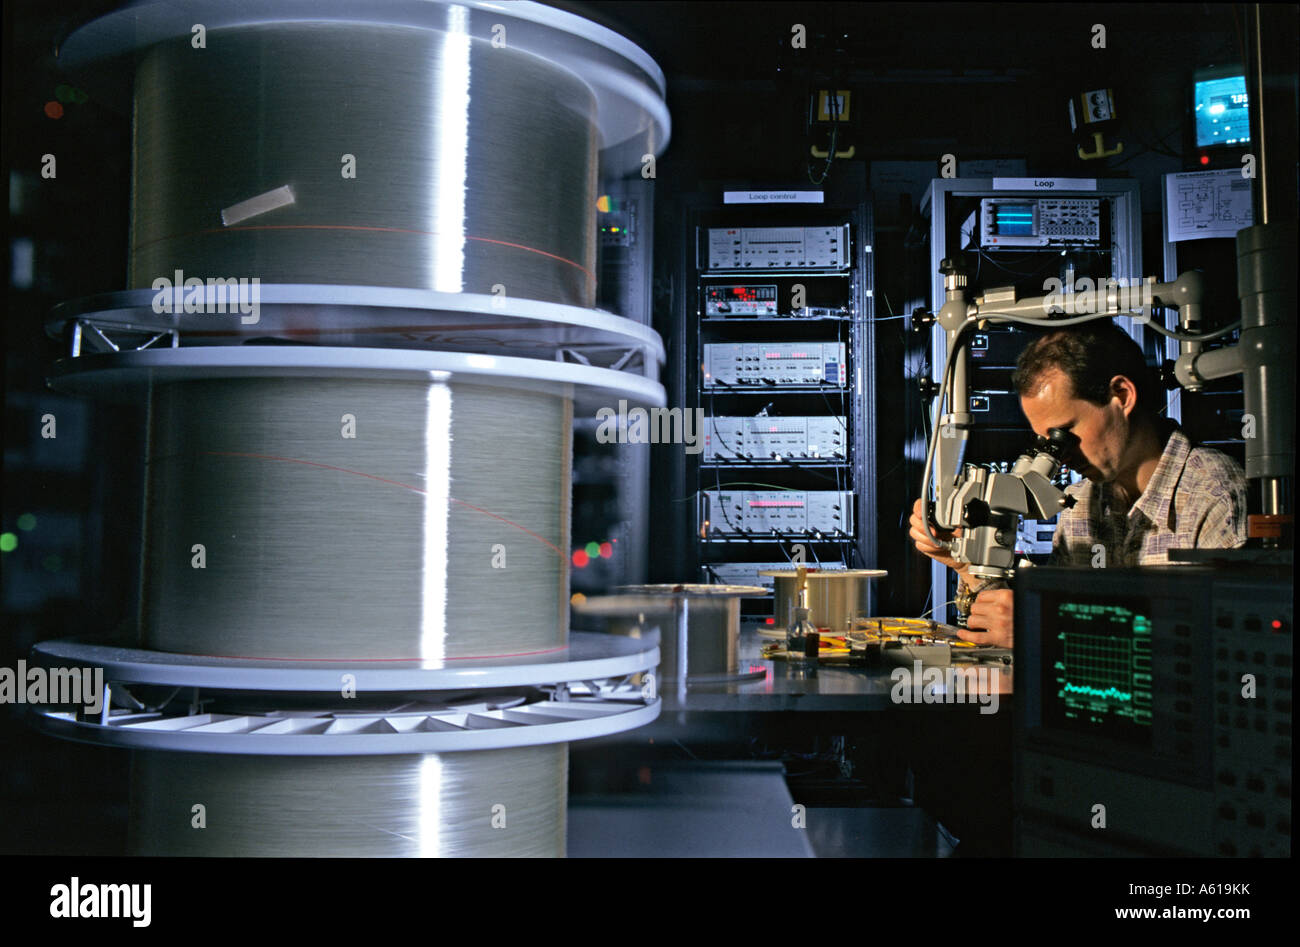 Research on optical fibre, Heinrich-Hertz-Institut, Berlin, Germany - Stock Image